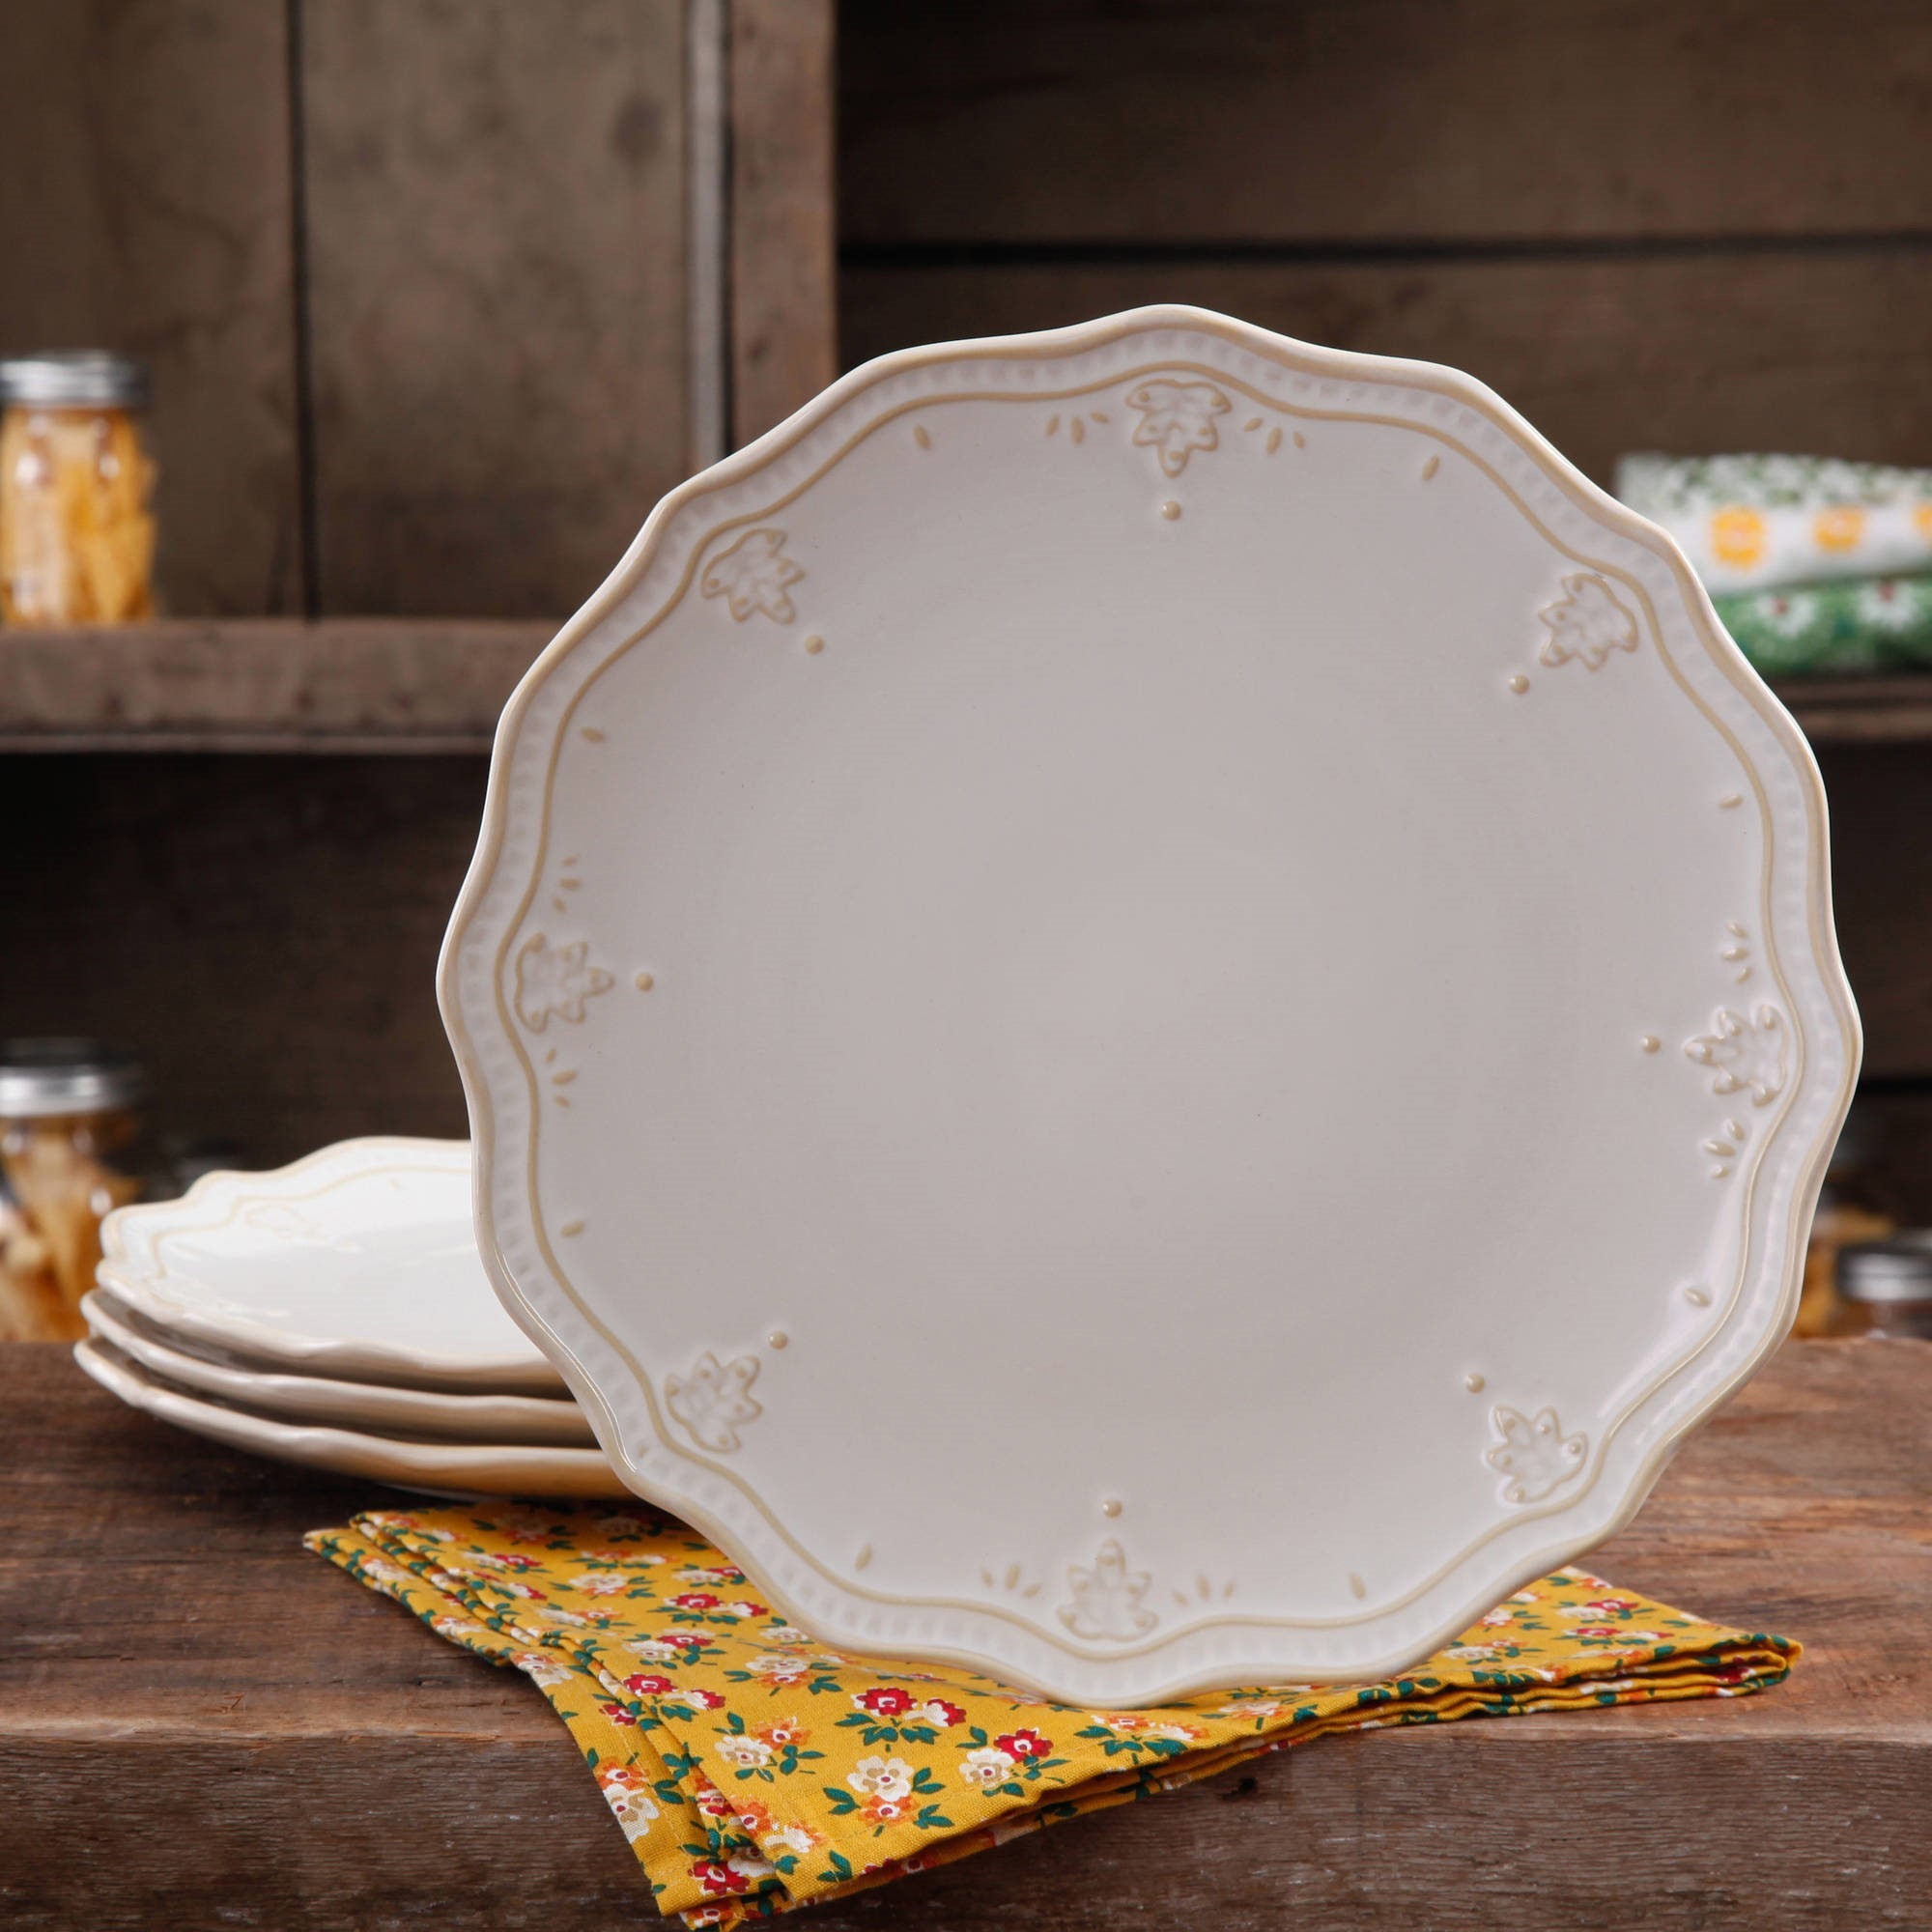 The Pioneer Woman Farmhouse Lace Dinner Plate Set, 4-Pack